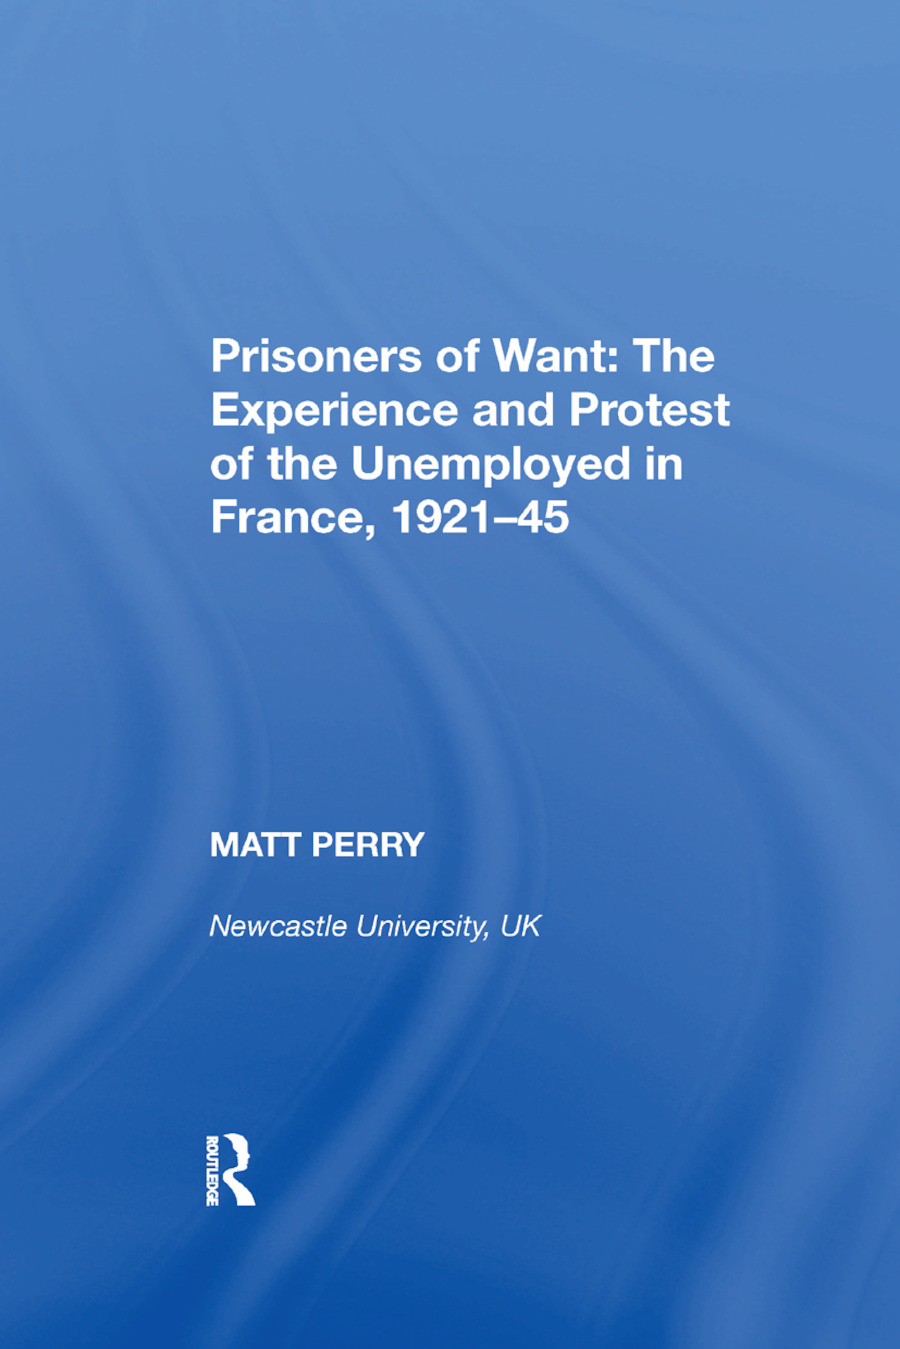 Prisoners of Want: The Experience and Protest of the Unemployed in France, 1921�45